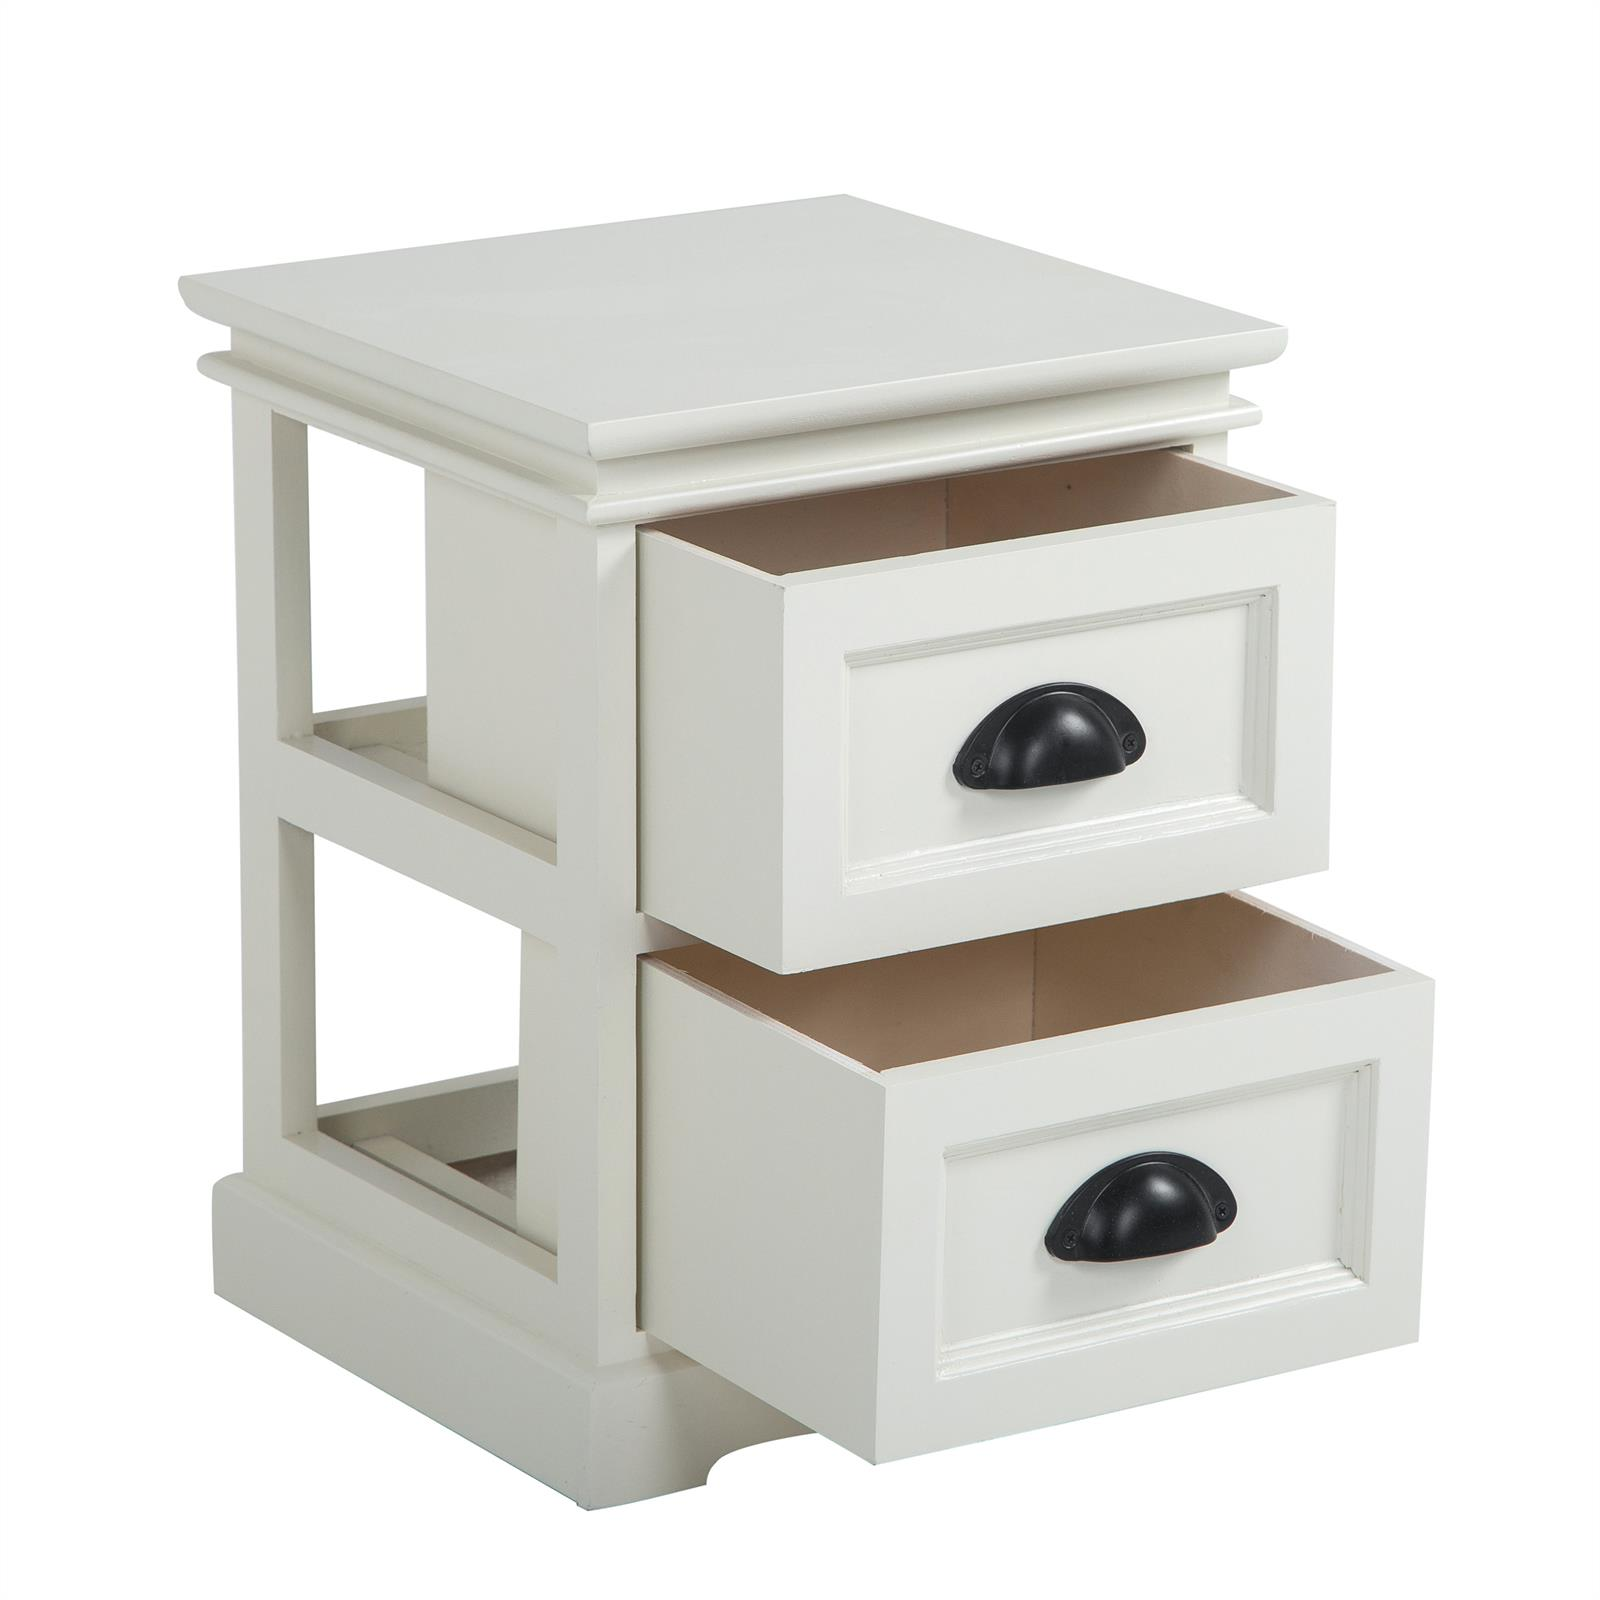 Meuble Chevet Table De Chevet Landhaus 2 Tiroirs Blanc